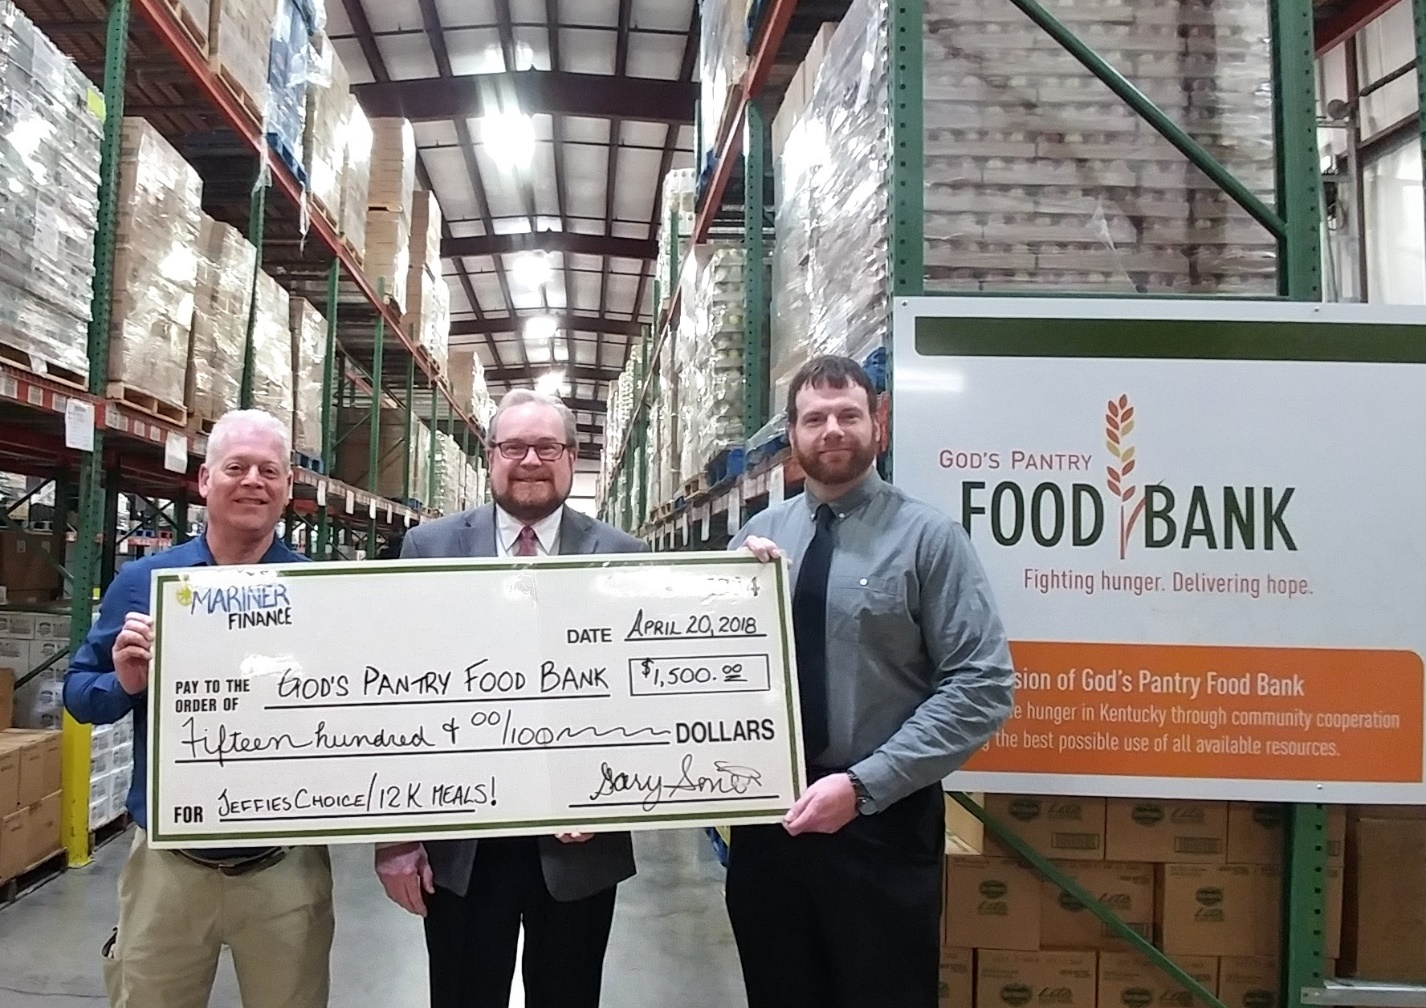 Mariner Finance representatives Gary Smith and Joe Keys are thanked by God's Pantry Food Bank CEO Michael J. Halligan for their generous gift to feed hungry neighbors in Central and Eastern Kentucky.